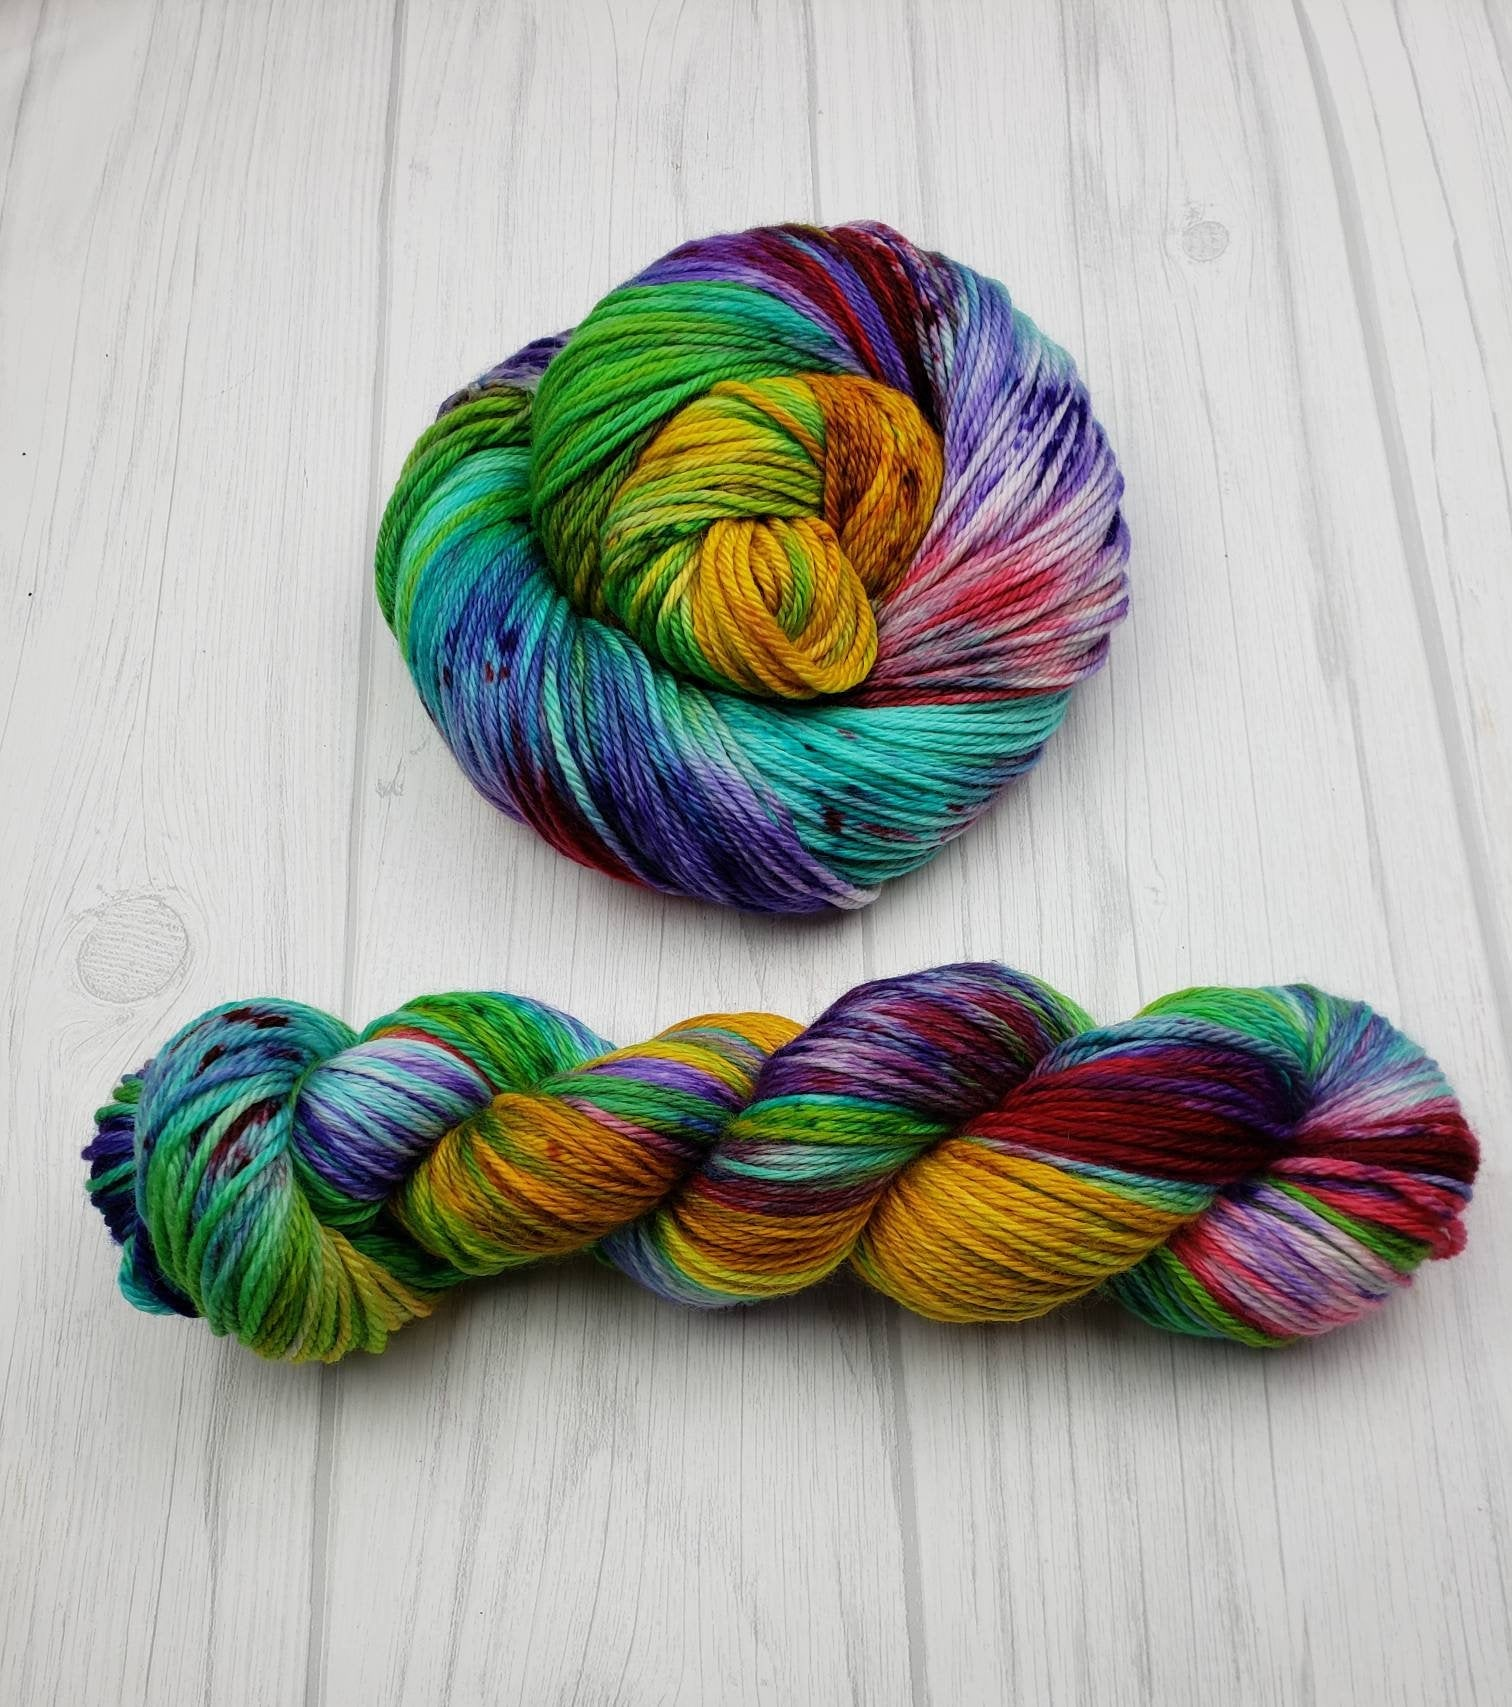 Thanos Loves to Knit, Hand Dyed Yarn in Sock Weight - Spindle warps yarns